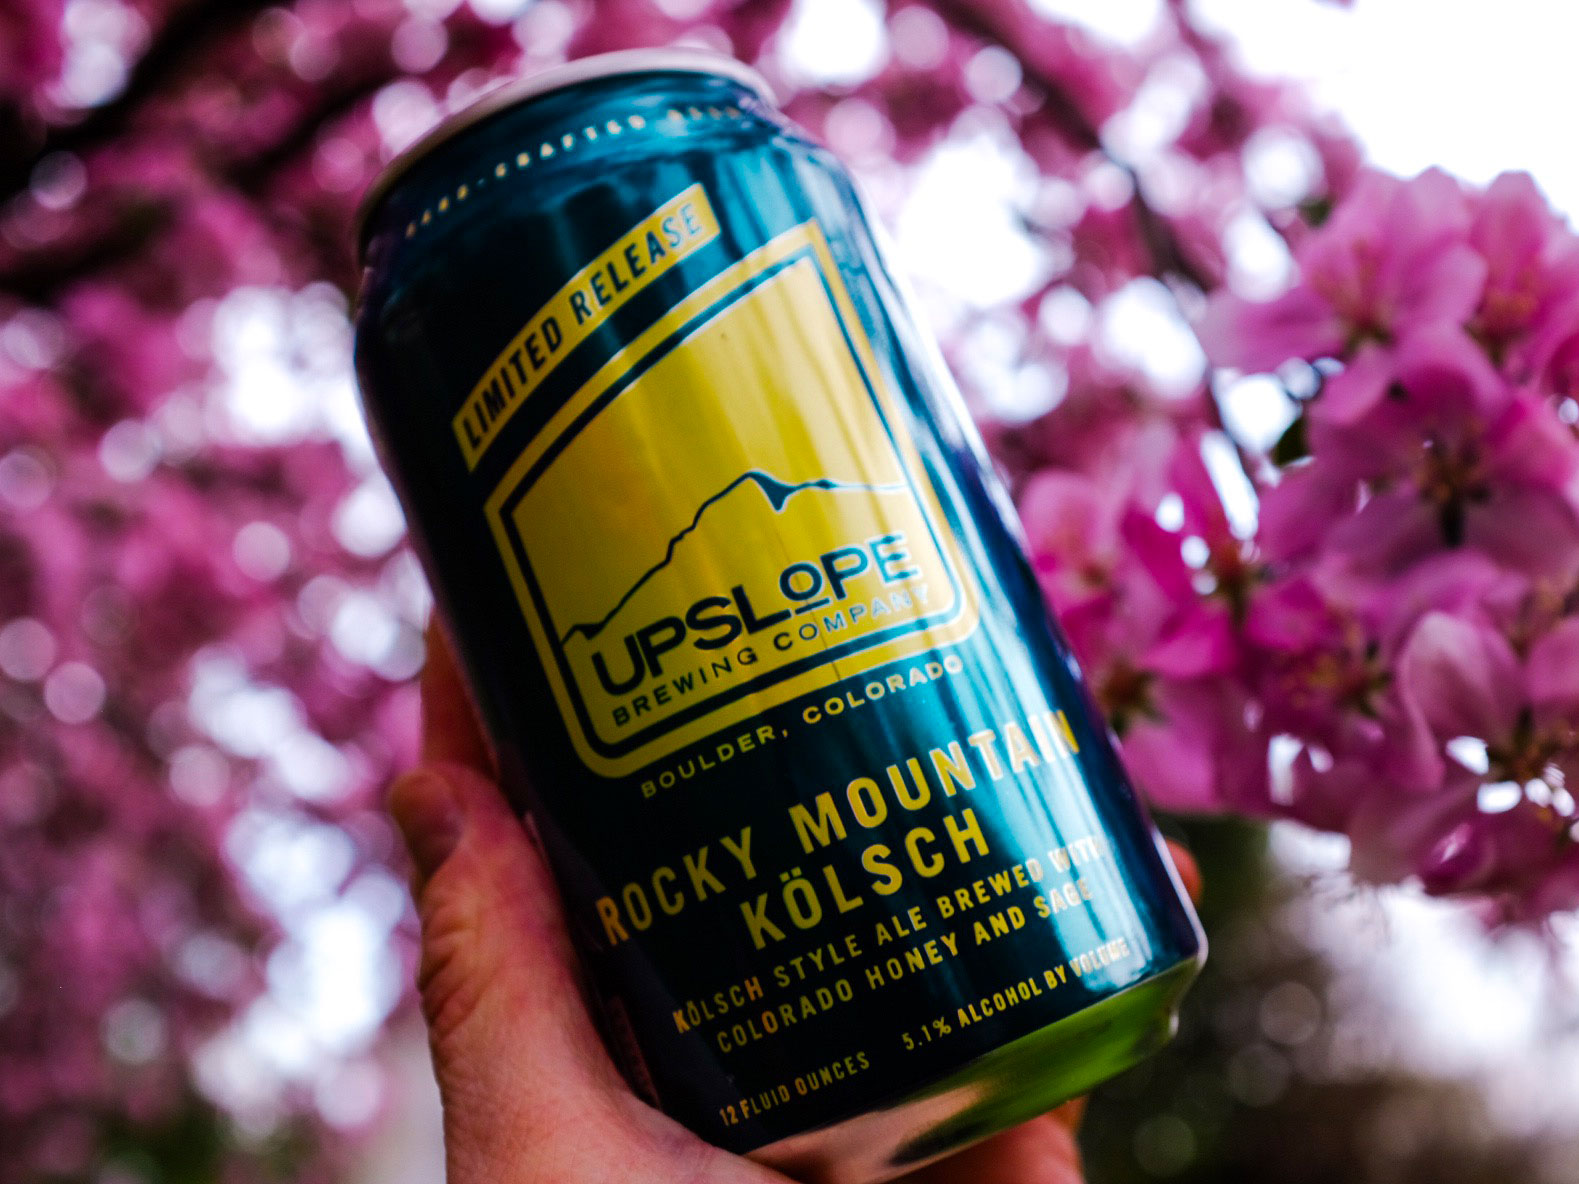 Rocky Mountain Kölsch by Upslope